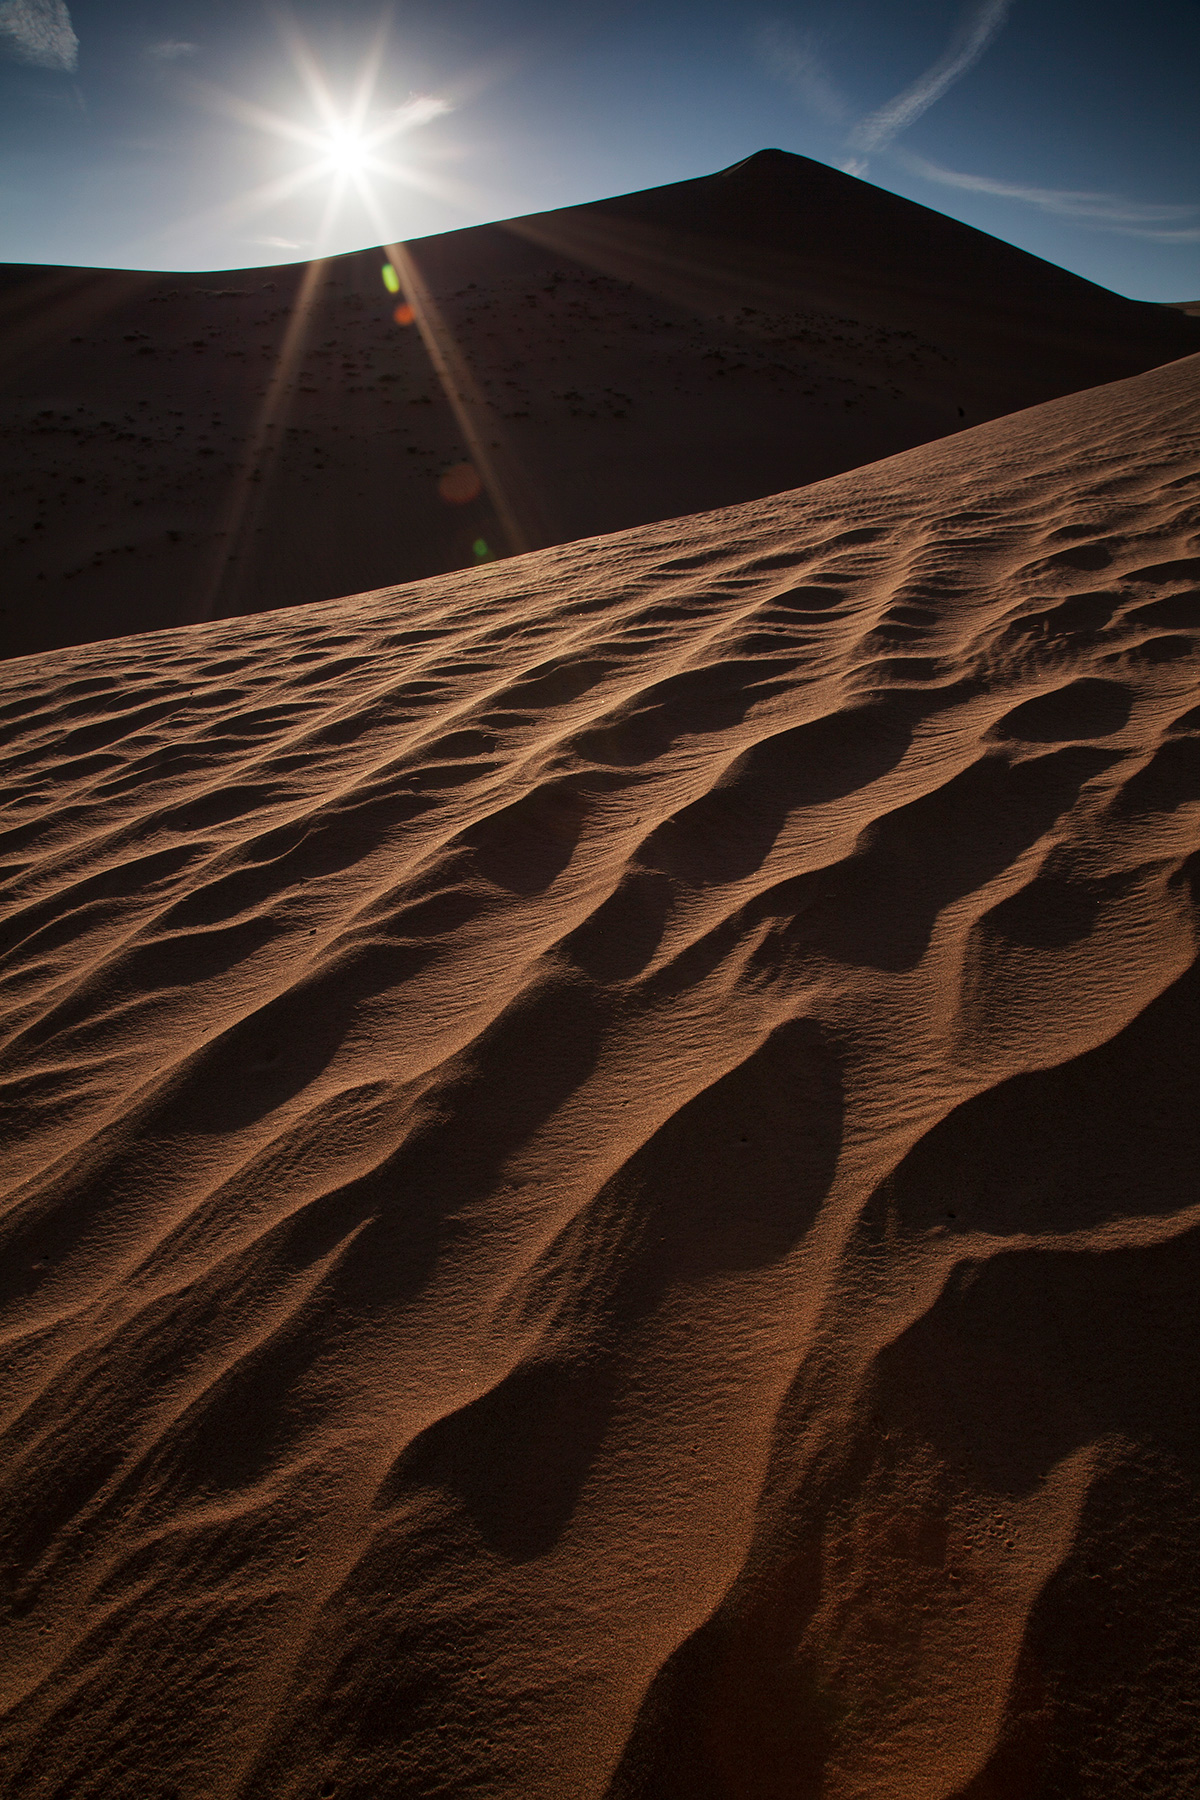 Sunset at Imperial Sand Dunes (Algodones Dunes) in the southern California desert